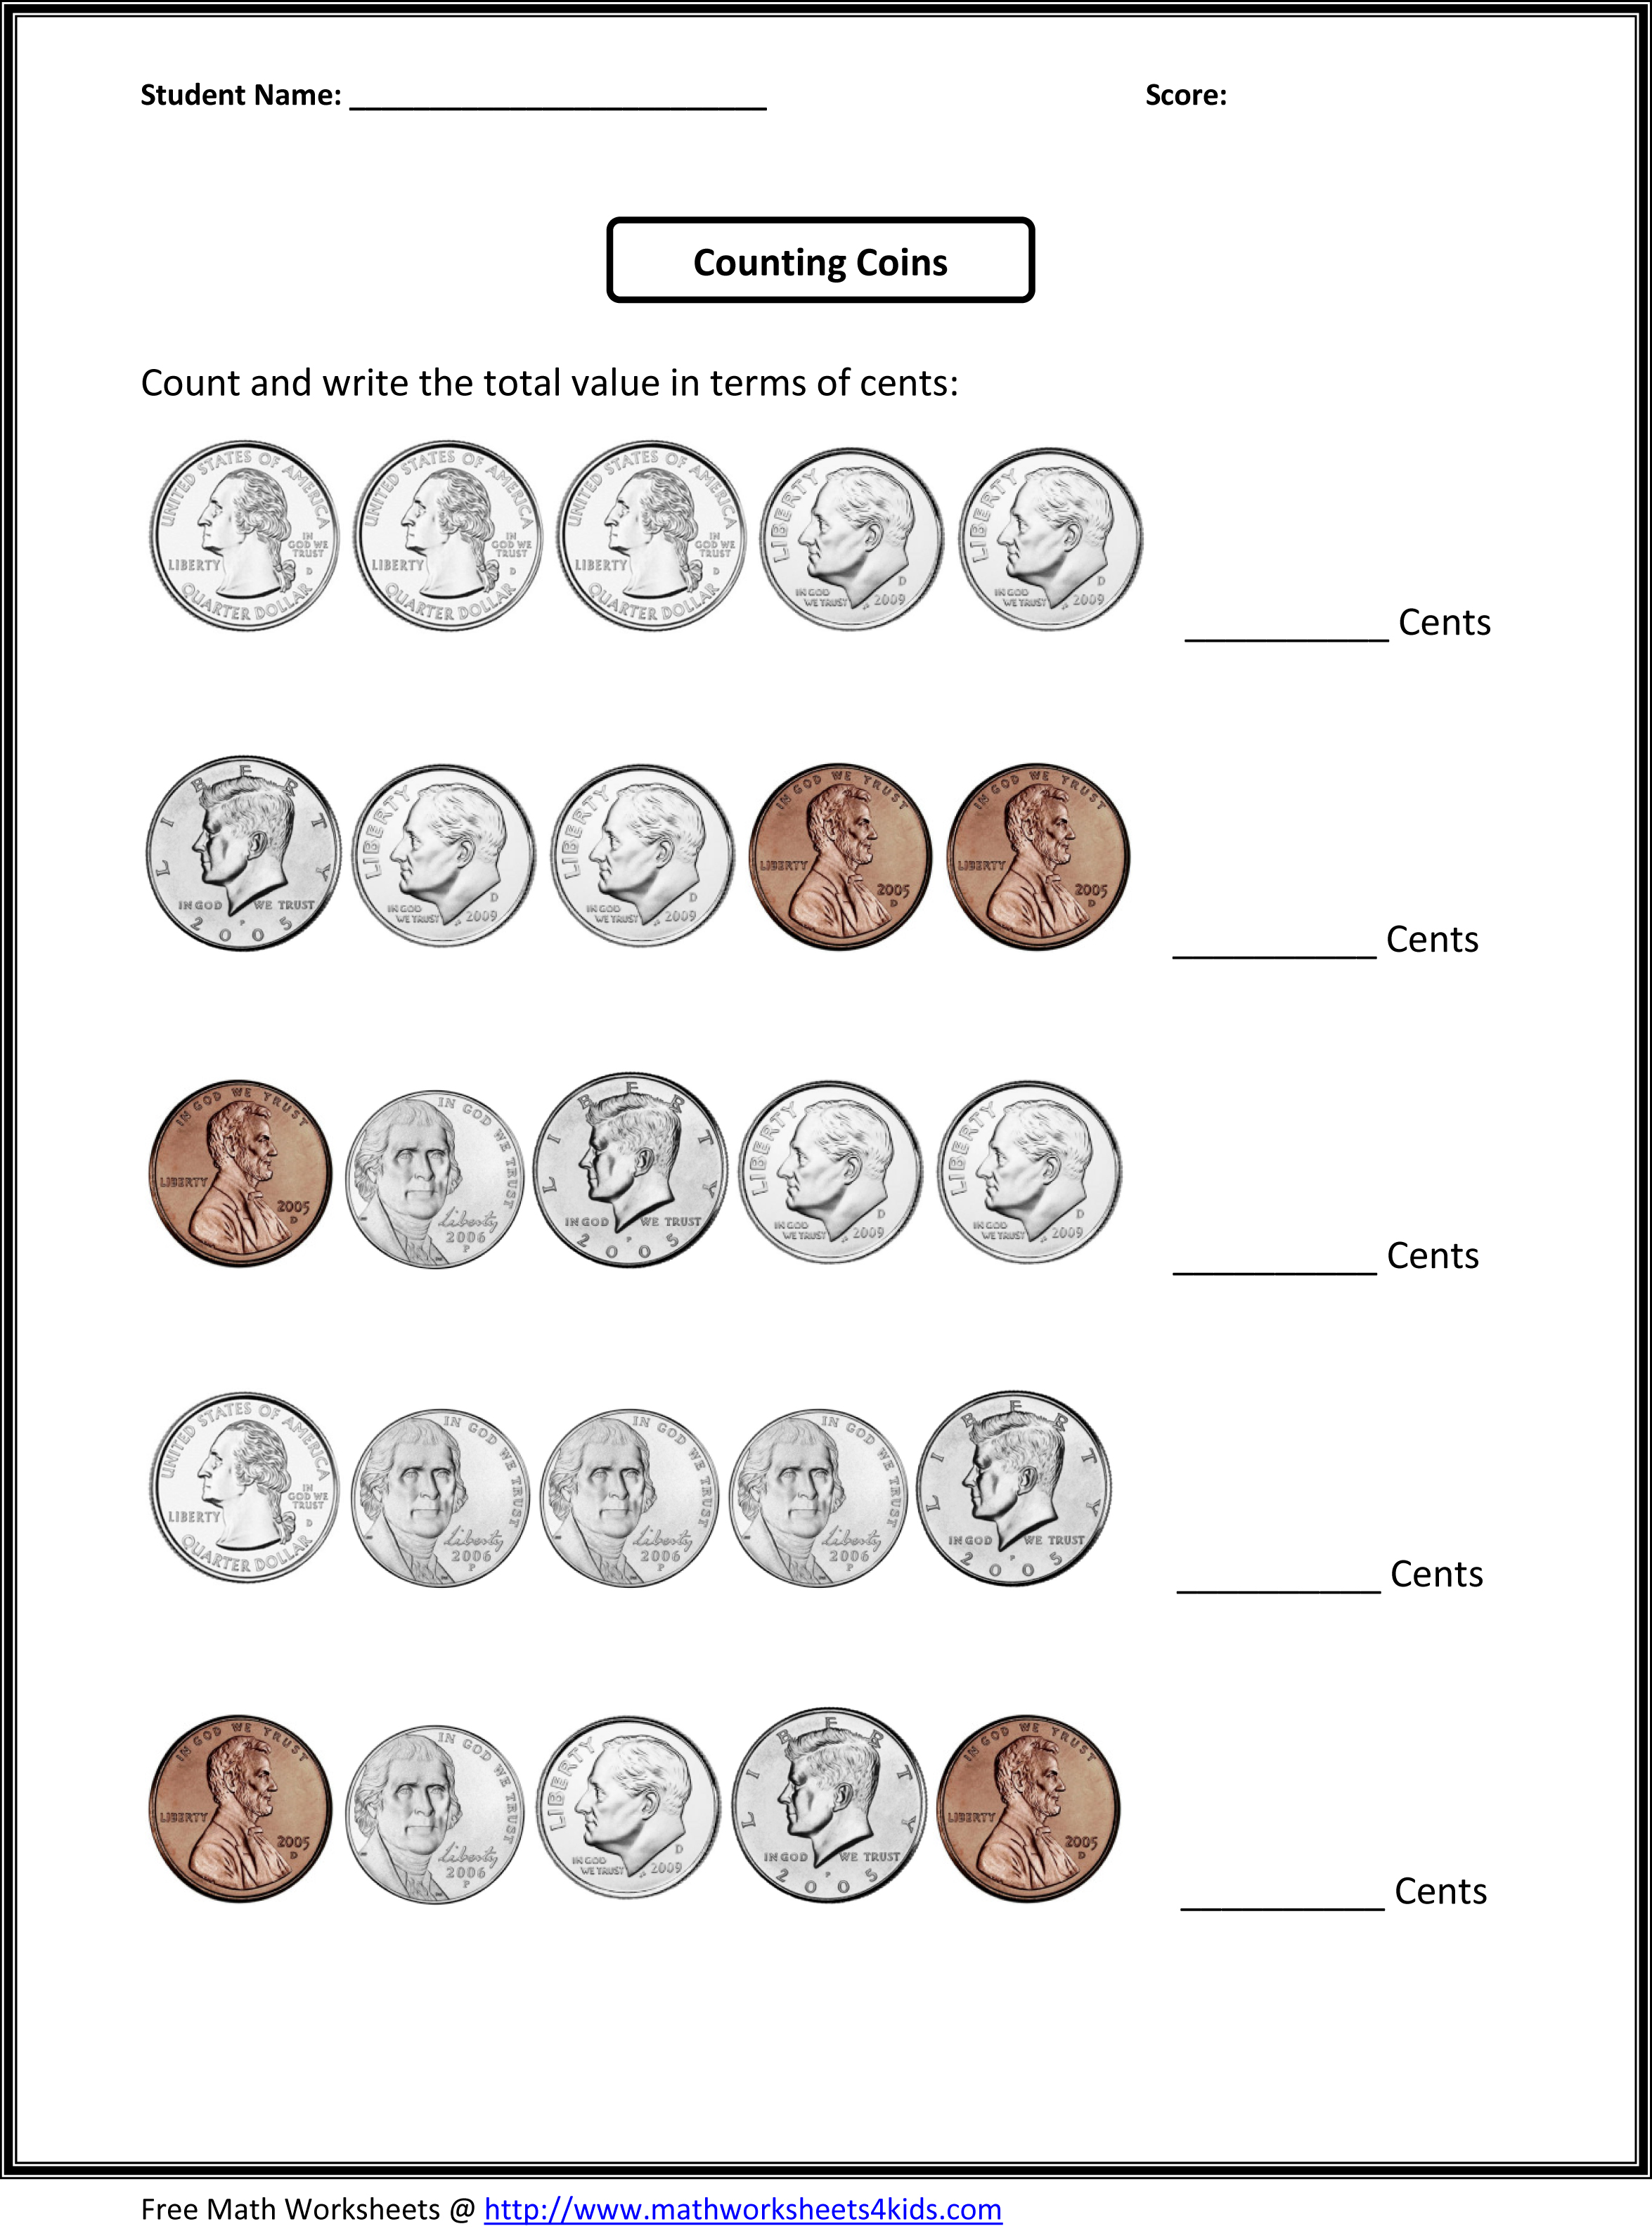 Counting Coins for 3rd grade